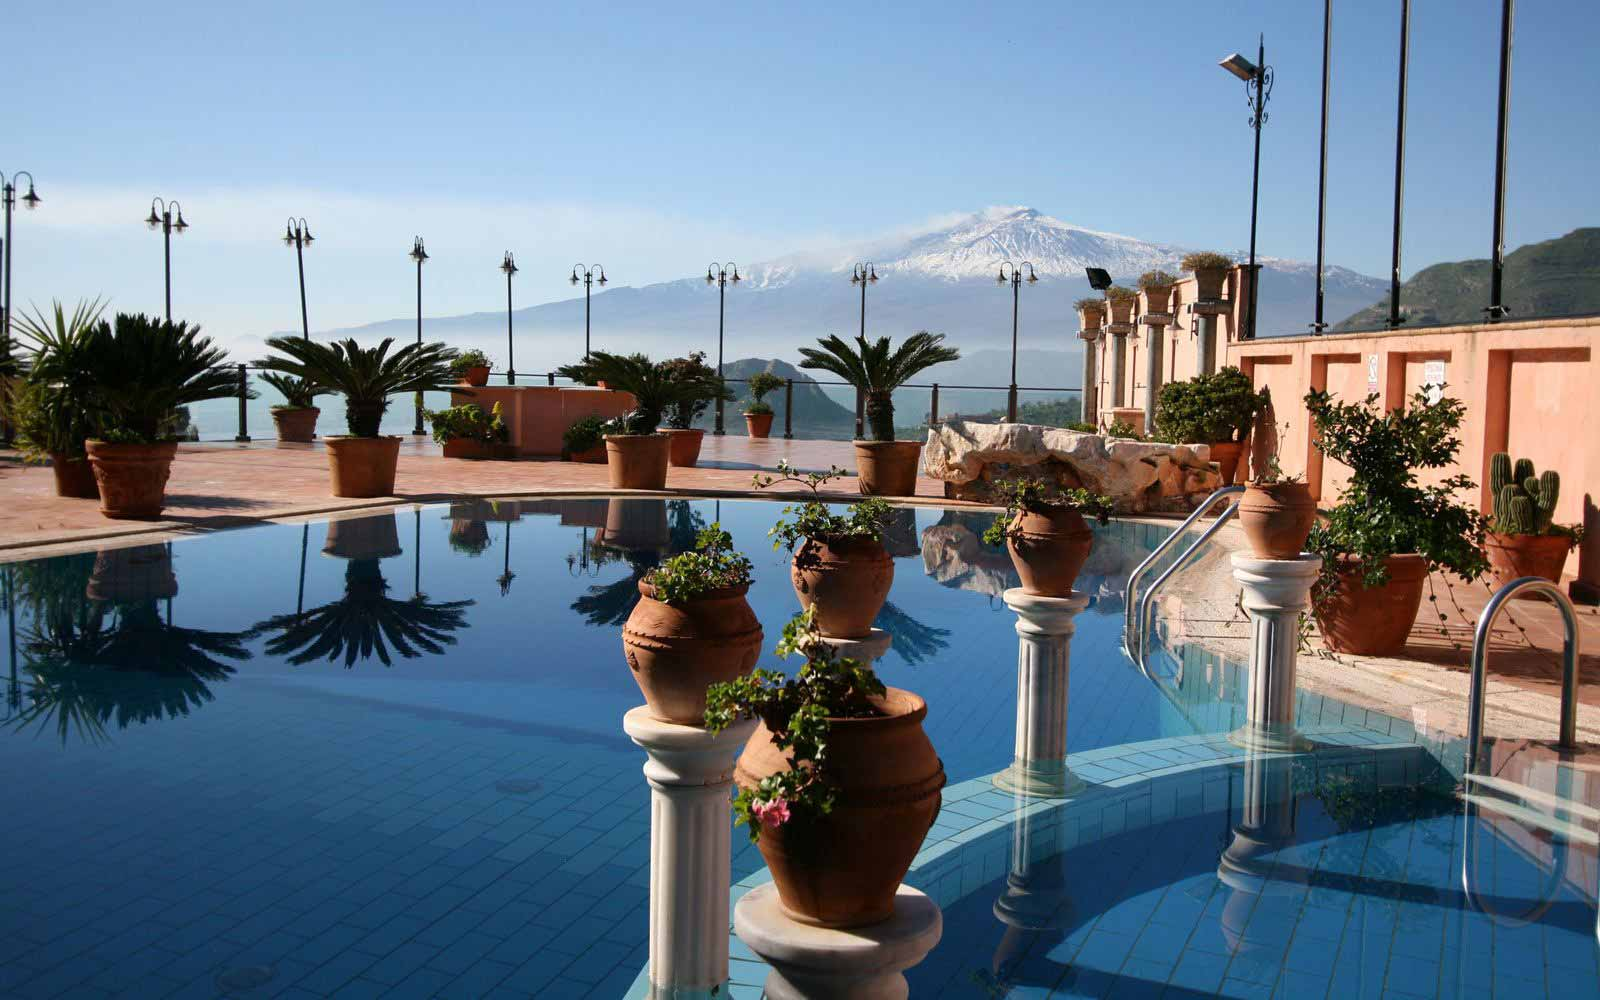 Pool with view over Mount Etna at Villa Sonia